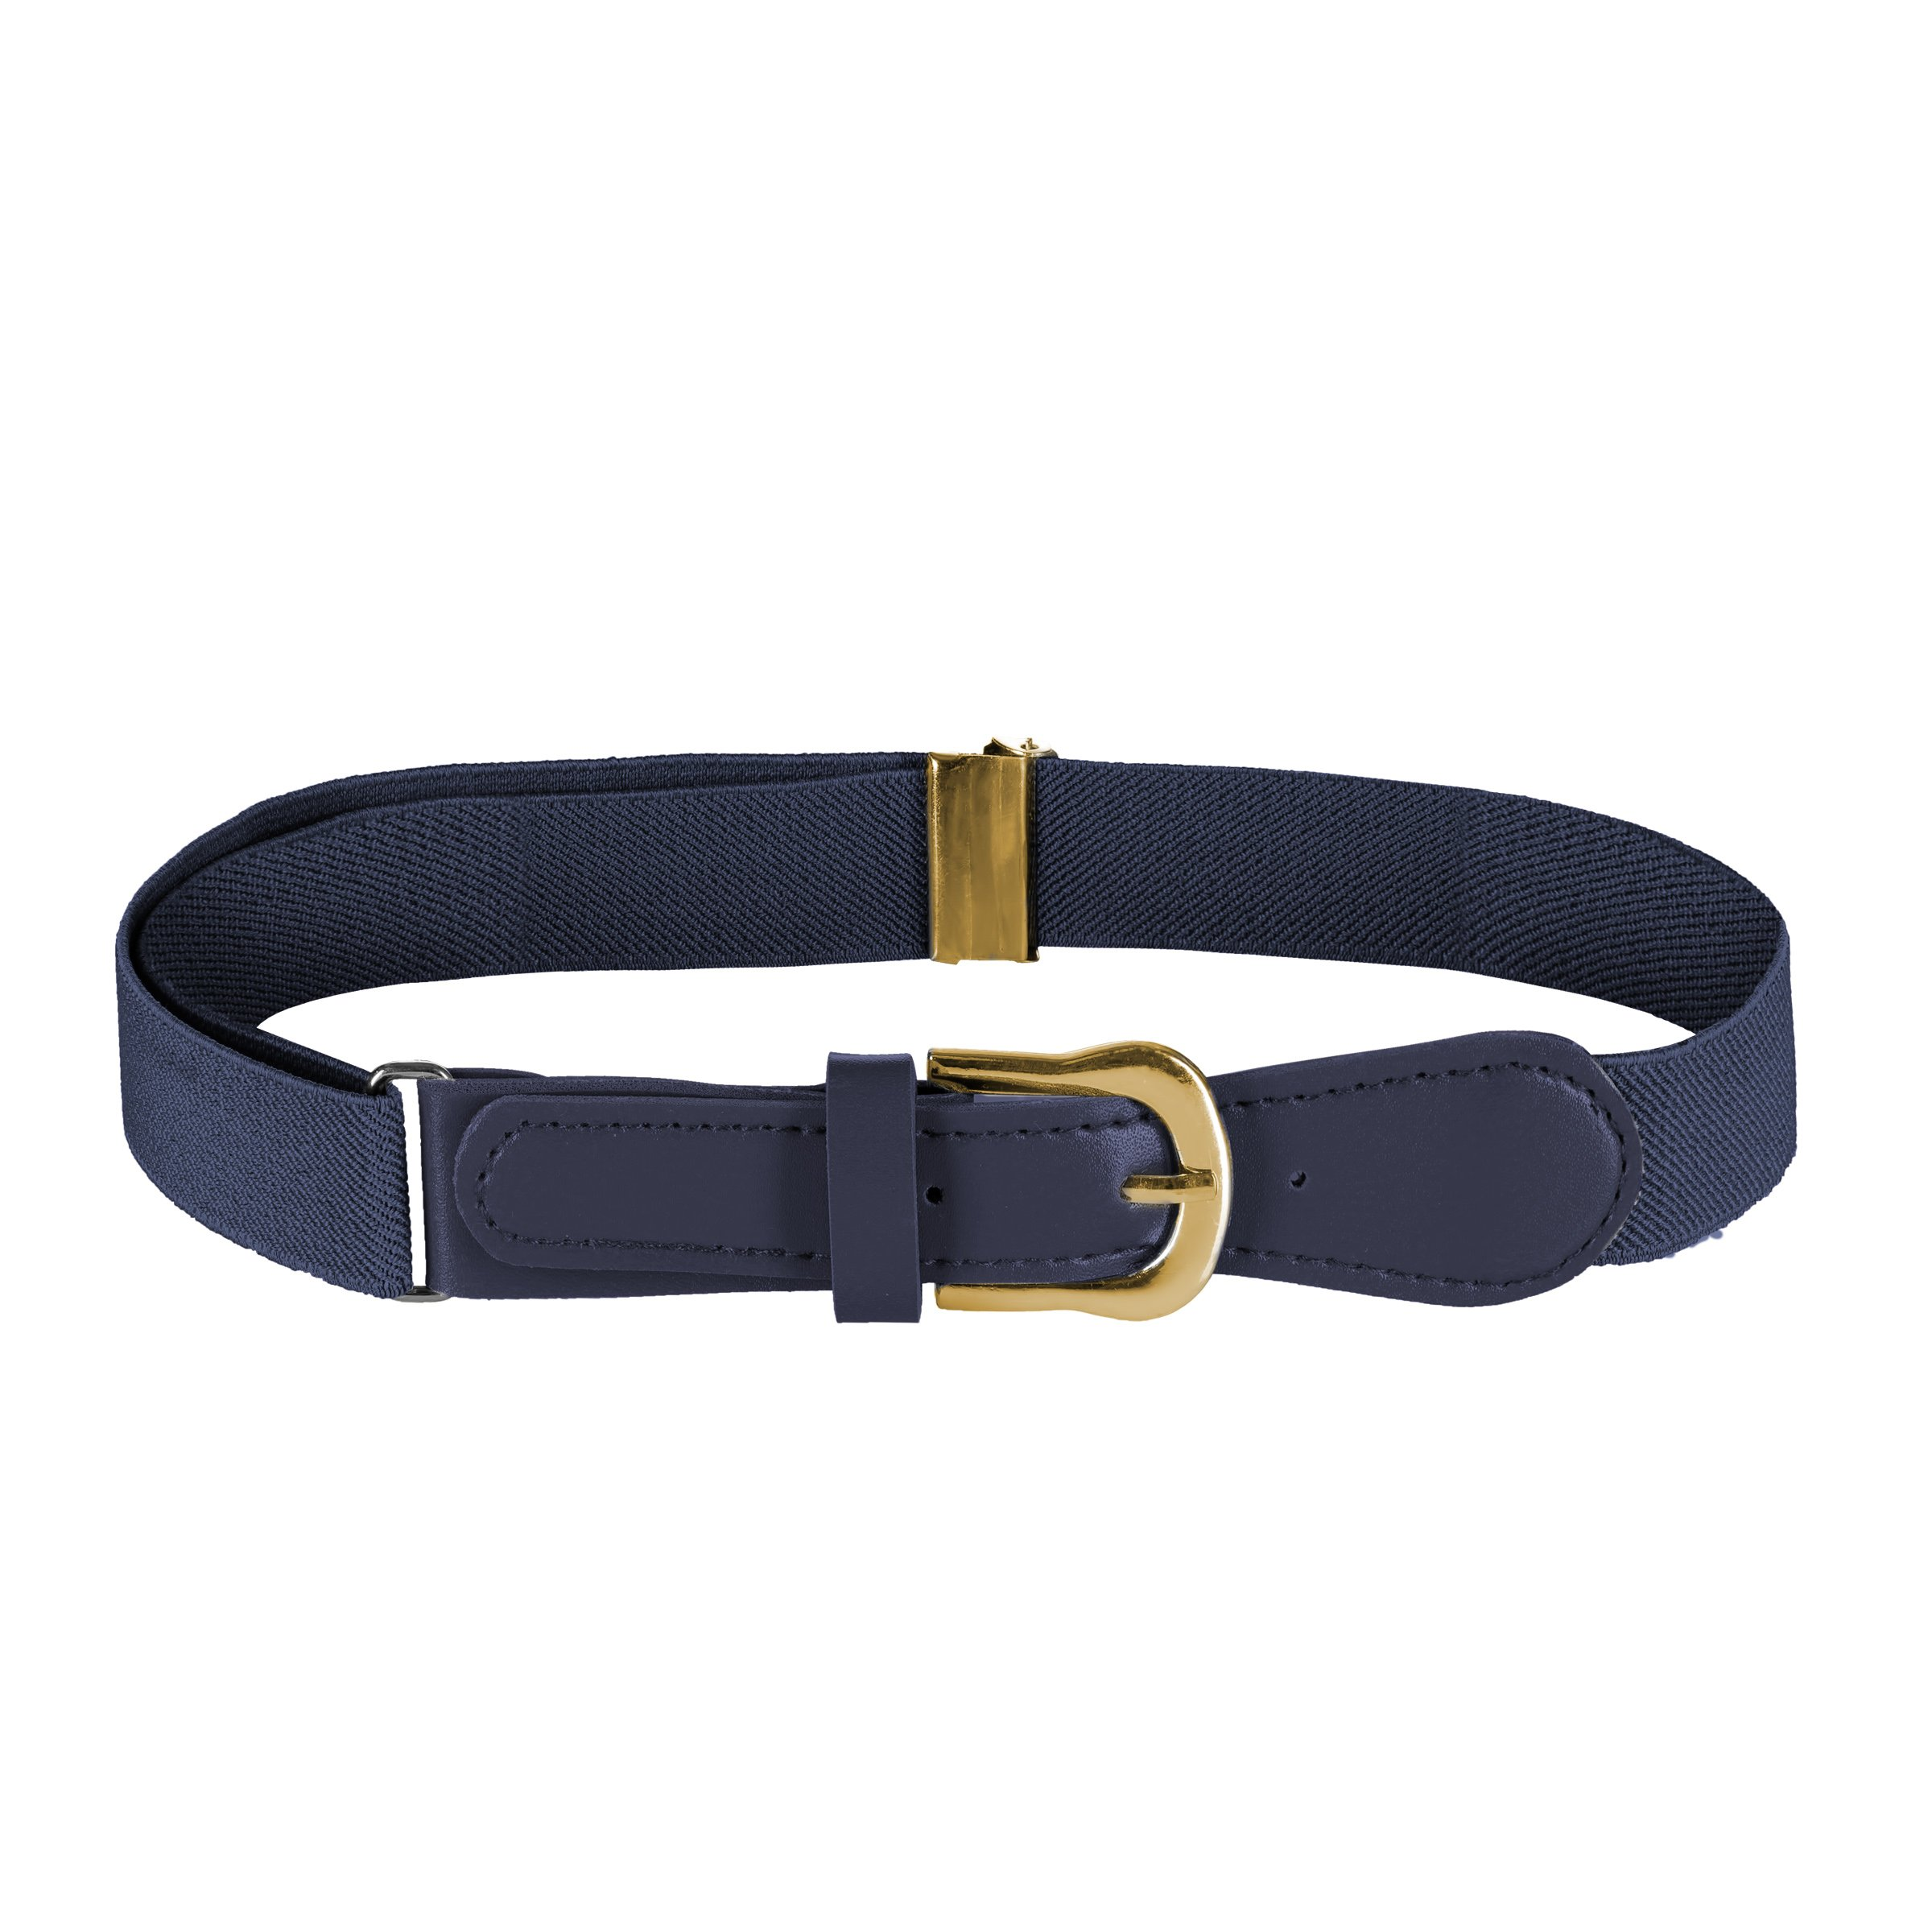 FIT RITE Kids Elastic Adjustable Belt with Leather Closure (Navy)